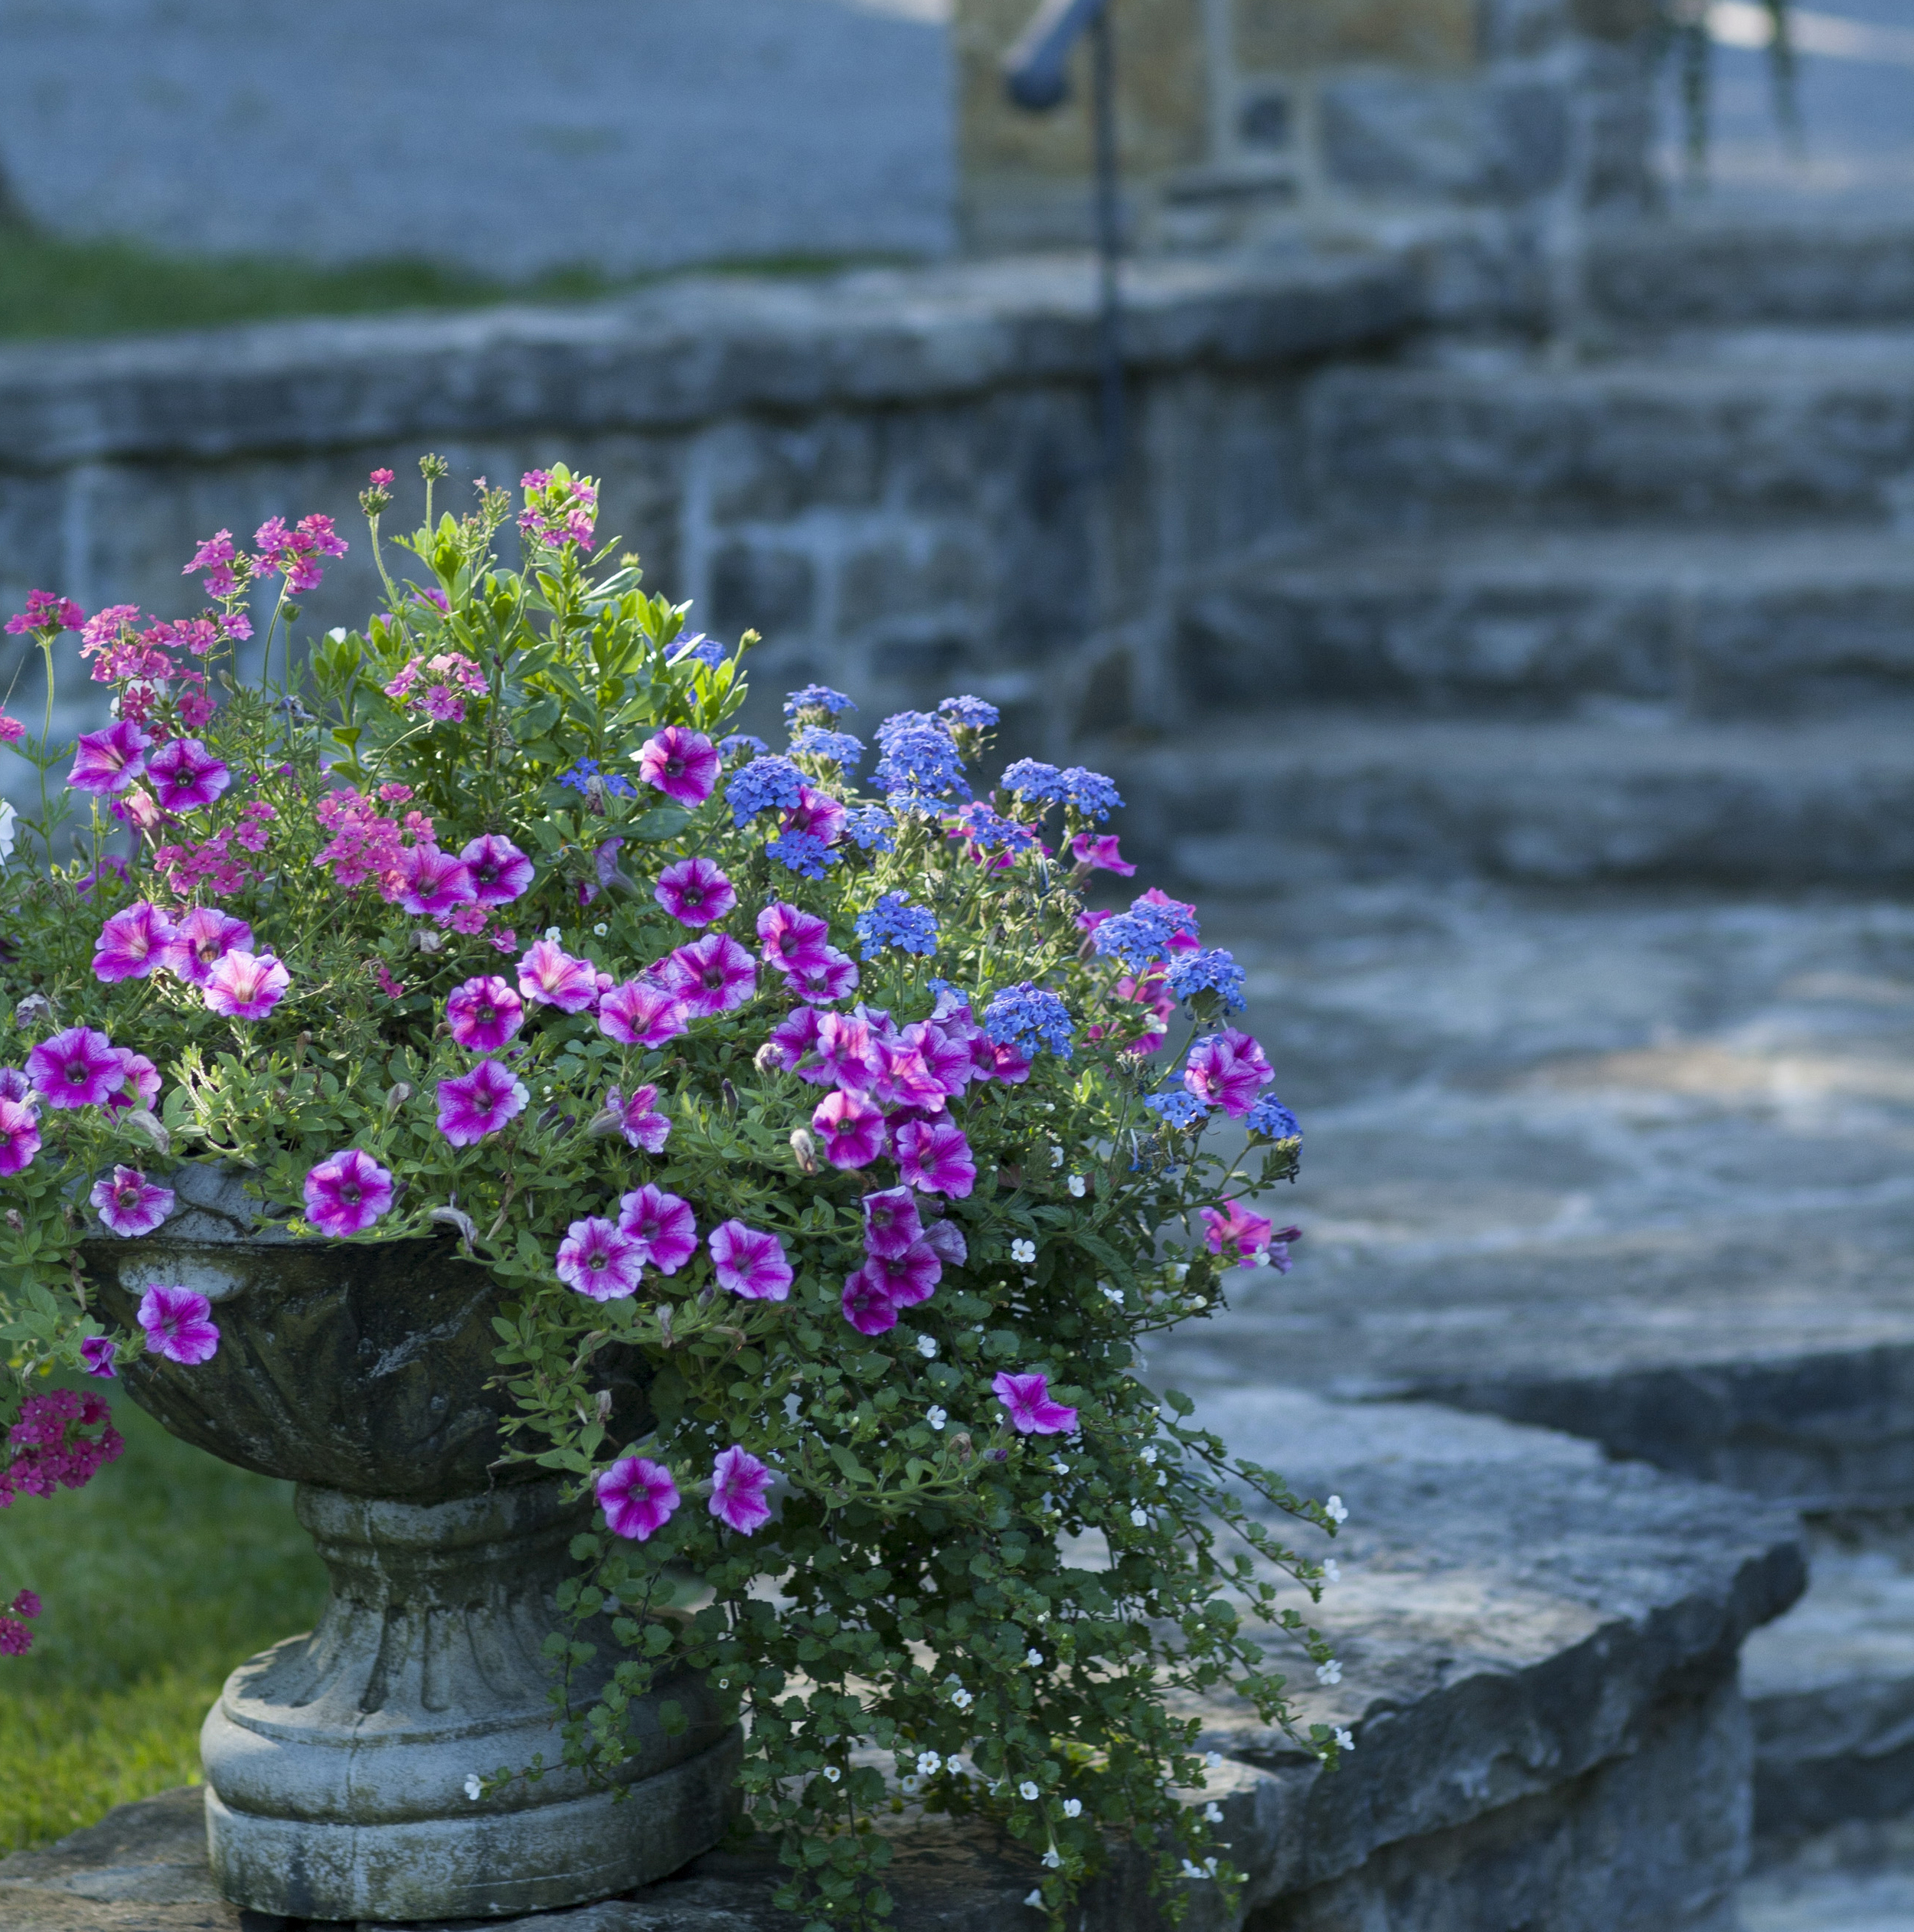 New Home With A Heritage Feel | Planter | Landscape Architecture | Riverview Design Solutions | Prescott, Ontario, Canada